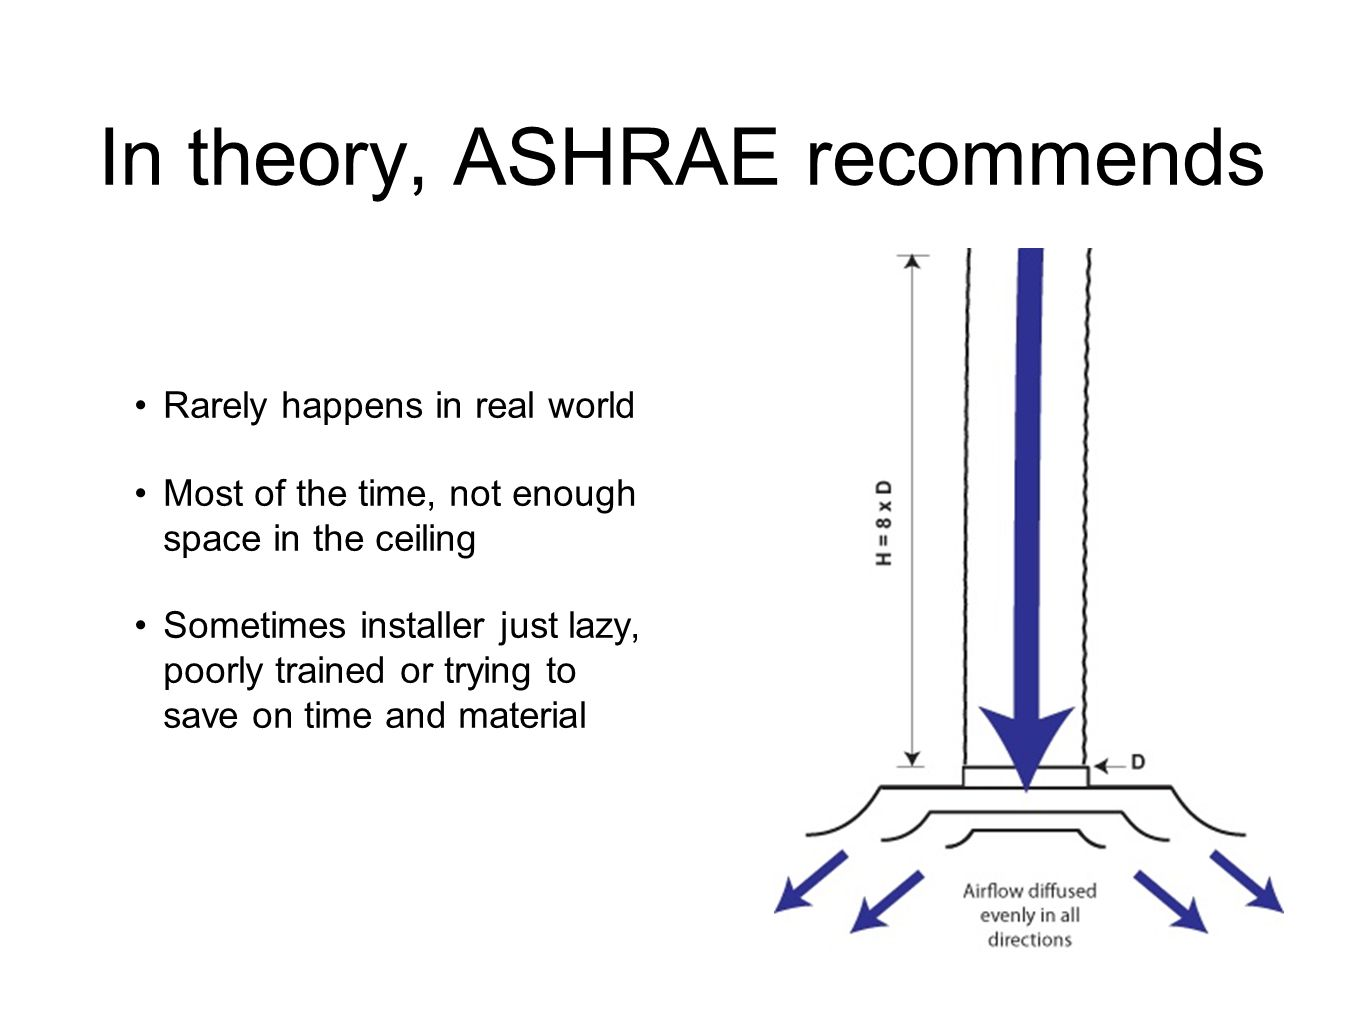 In theory, ASHRAE recommends Rarely happens in real world Most of the time, not enough space in the ceiling Sometimes installer just lazy, poorly trained or trying to save on time and material